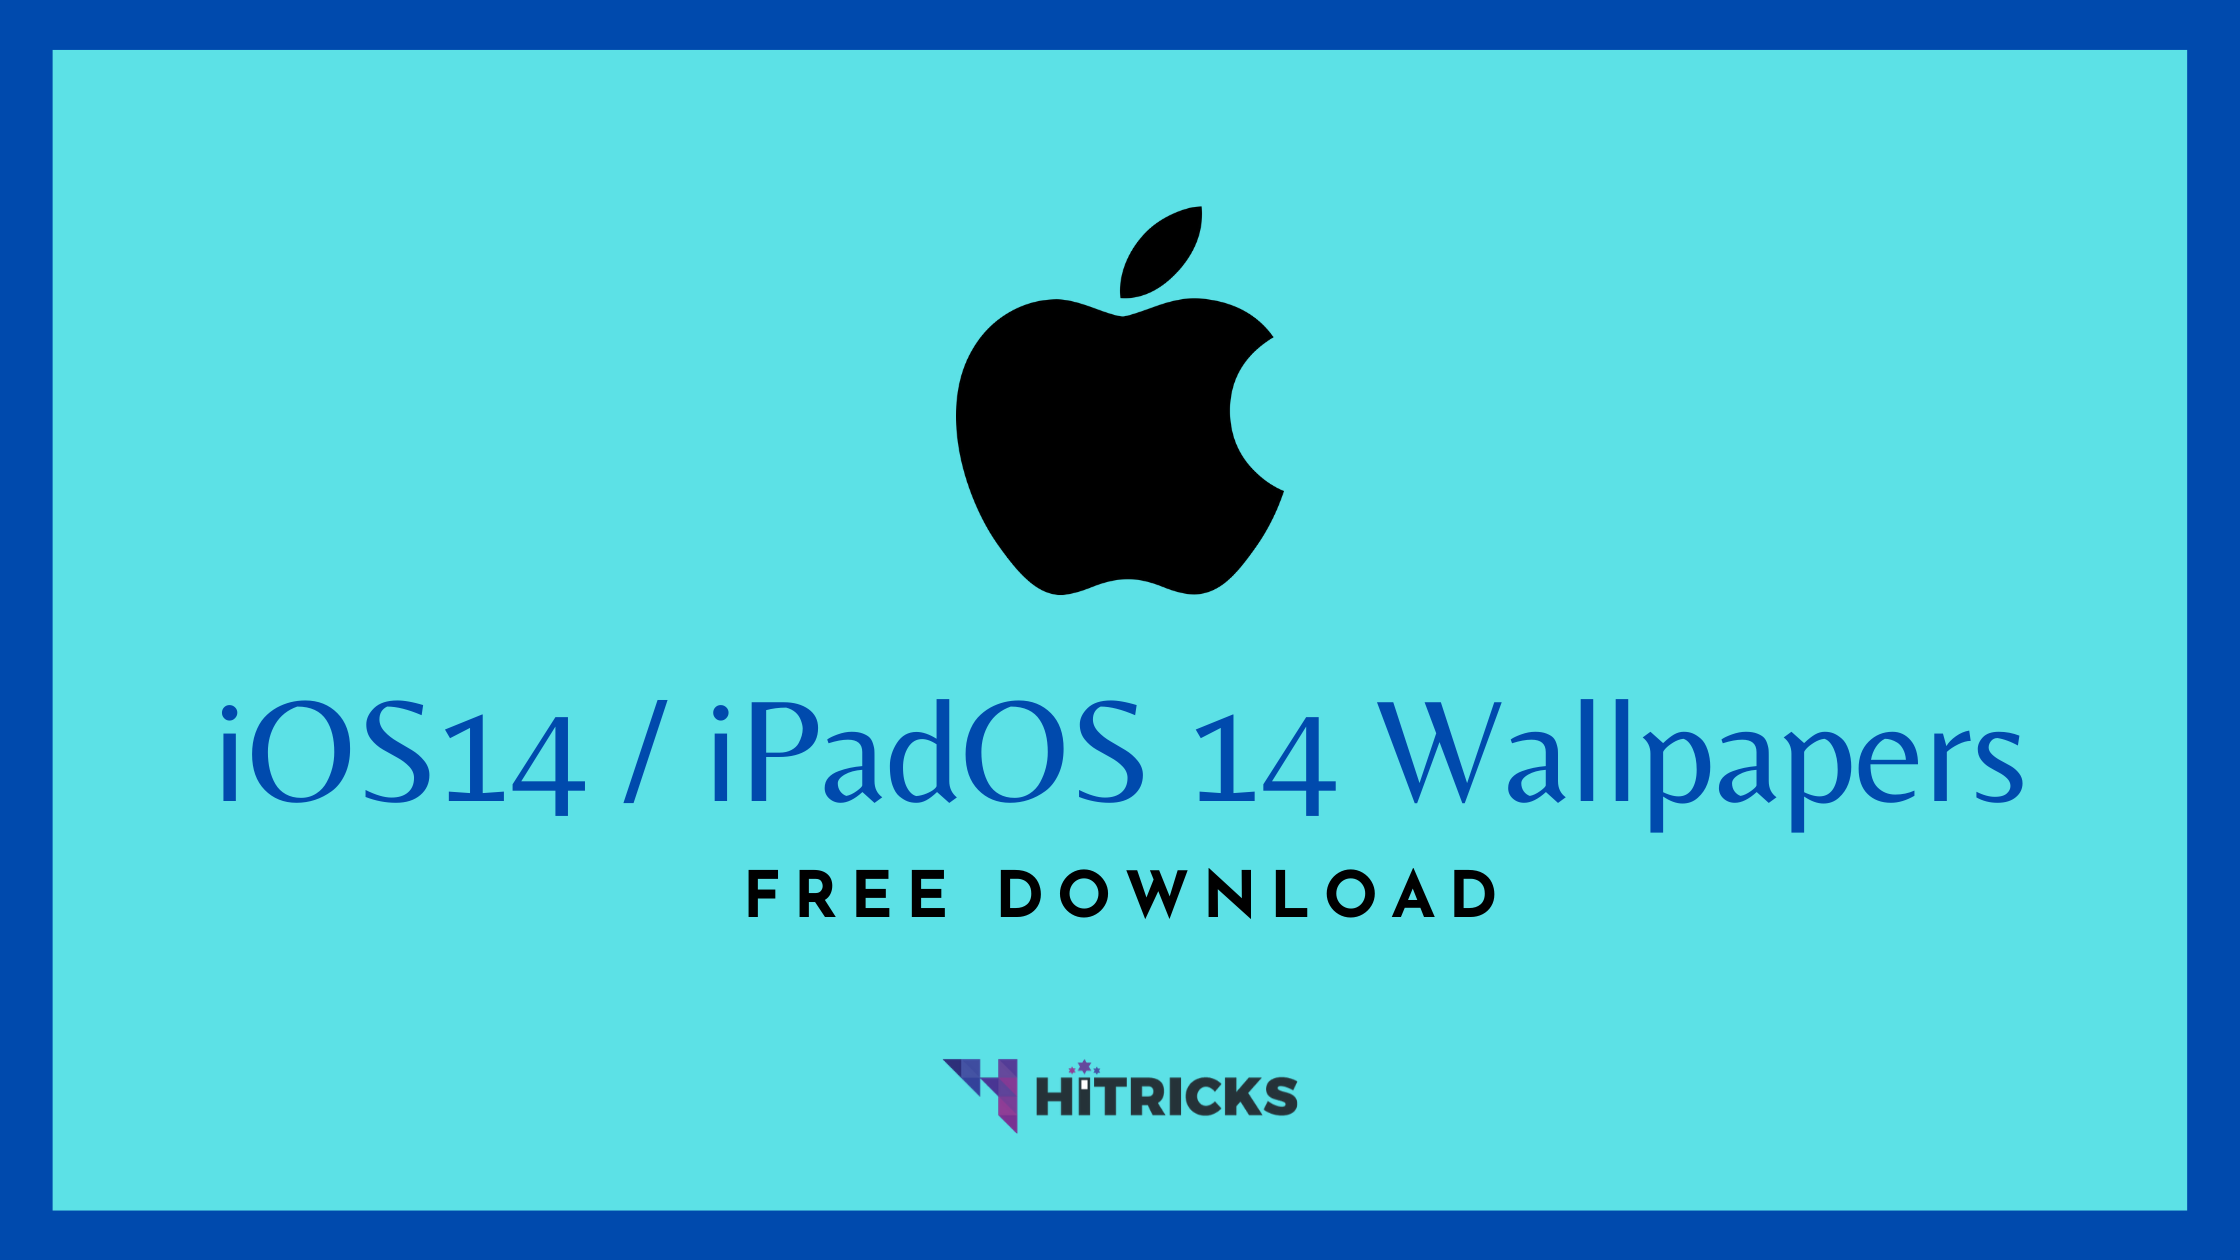 iOS 14 / iPadOS 14 Stock Wallpaper Free Download